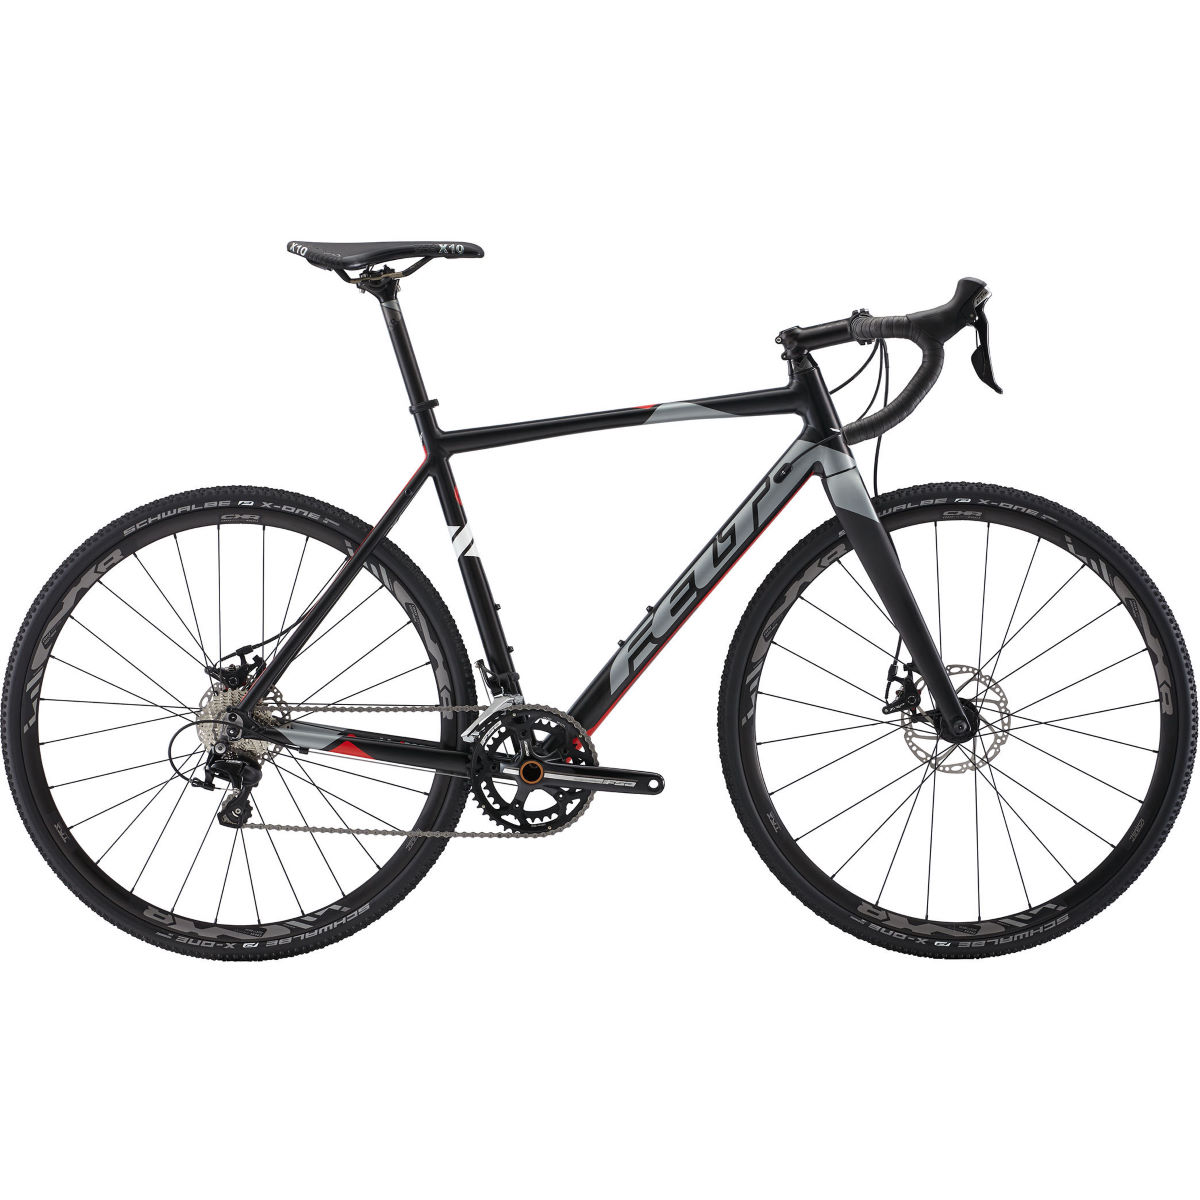 Felt F65X (2018) Cyclo Cross Bike - Bicicletas de ciclocross